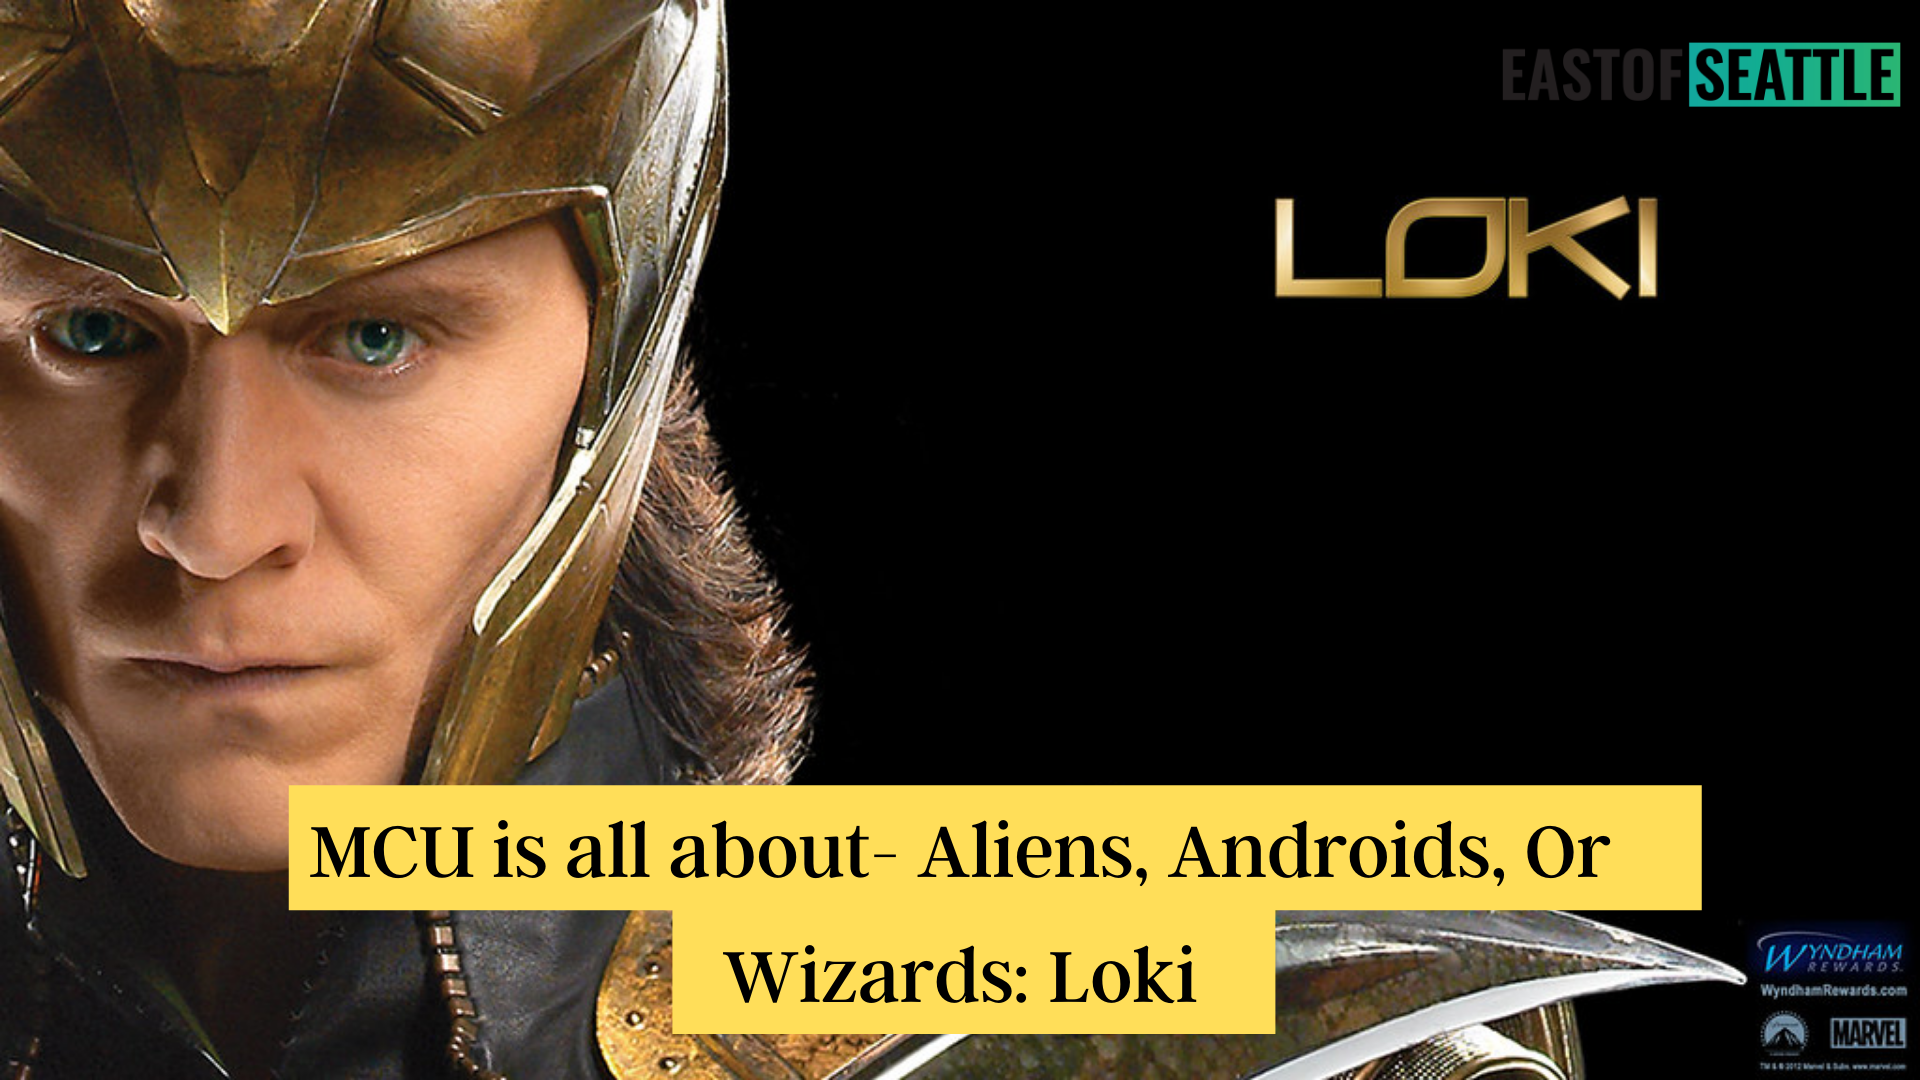 MCU is all about- Aliens, Androids, Or Wizards Loki